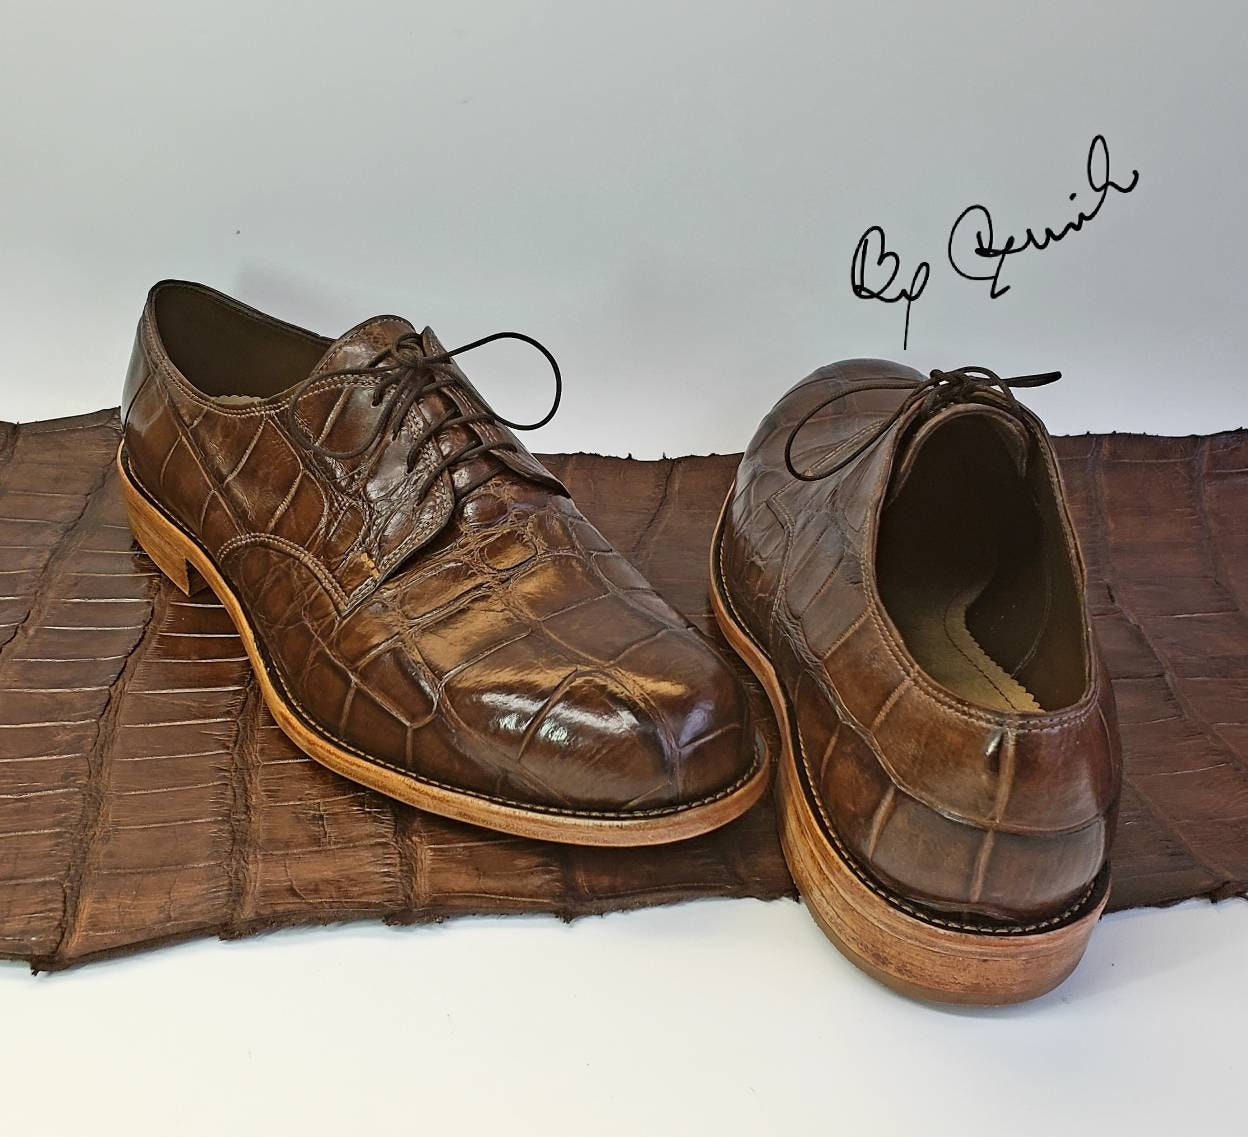 Exotic alligator, with Derby shoes, unique style with alligator, not heel cap, all leather( lining-counter-toe box-sole and stacked heels).Handcrafted USA ce6af7